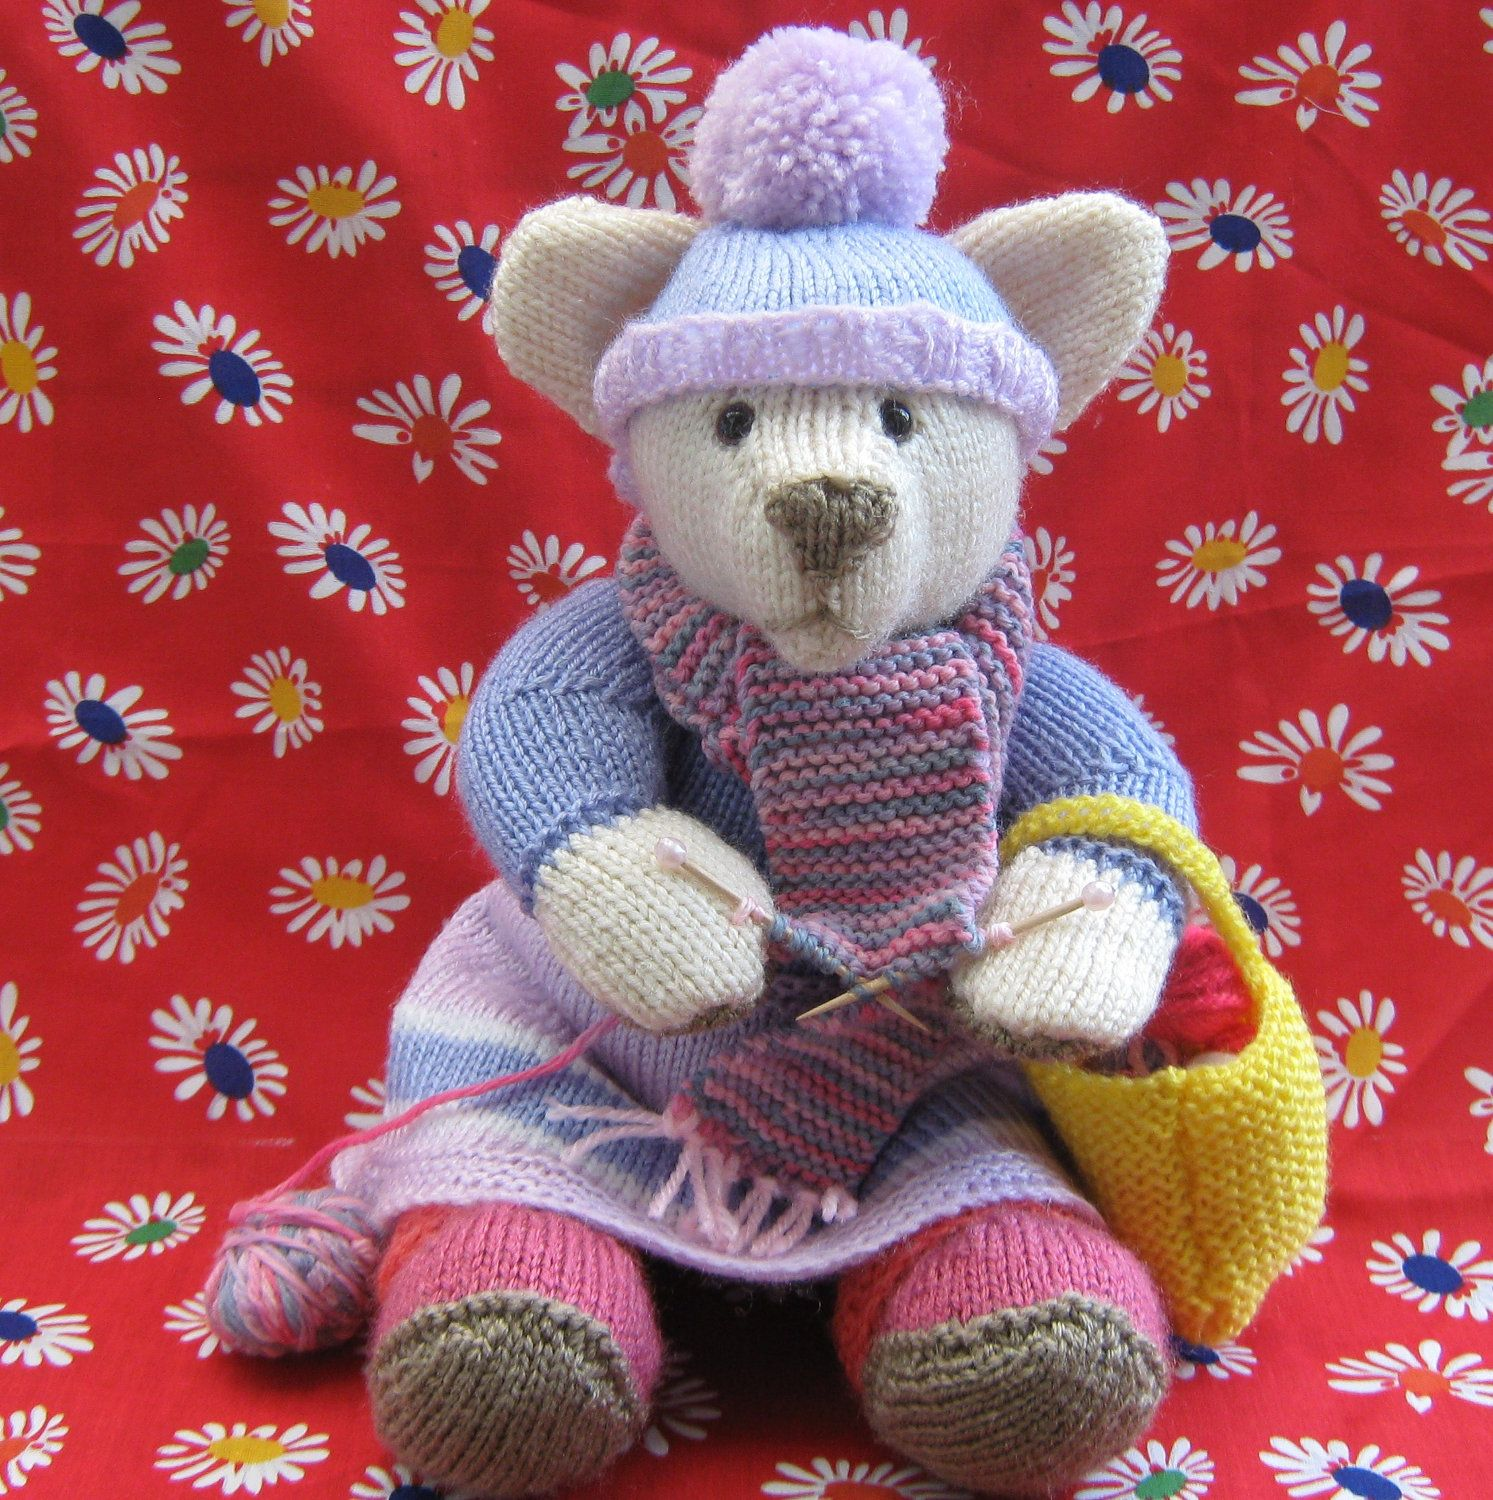 Hand knitted Alan Dart Pearl the Knitter Bear | Darts, Bears and Pearls